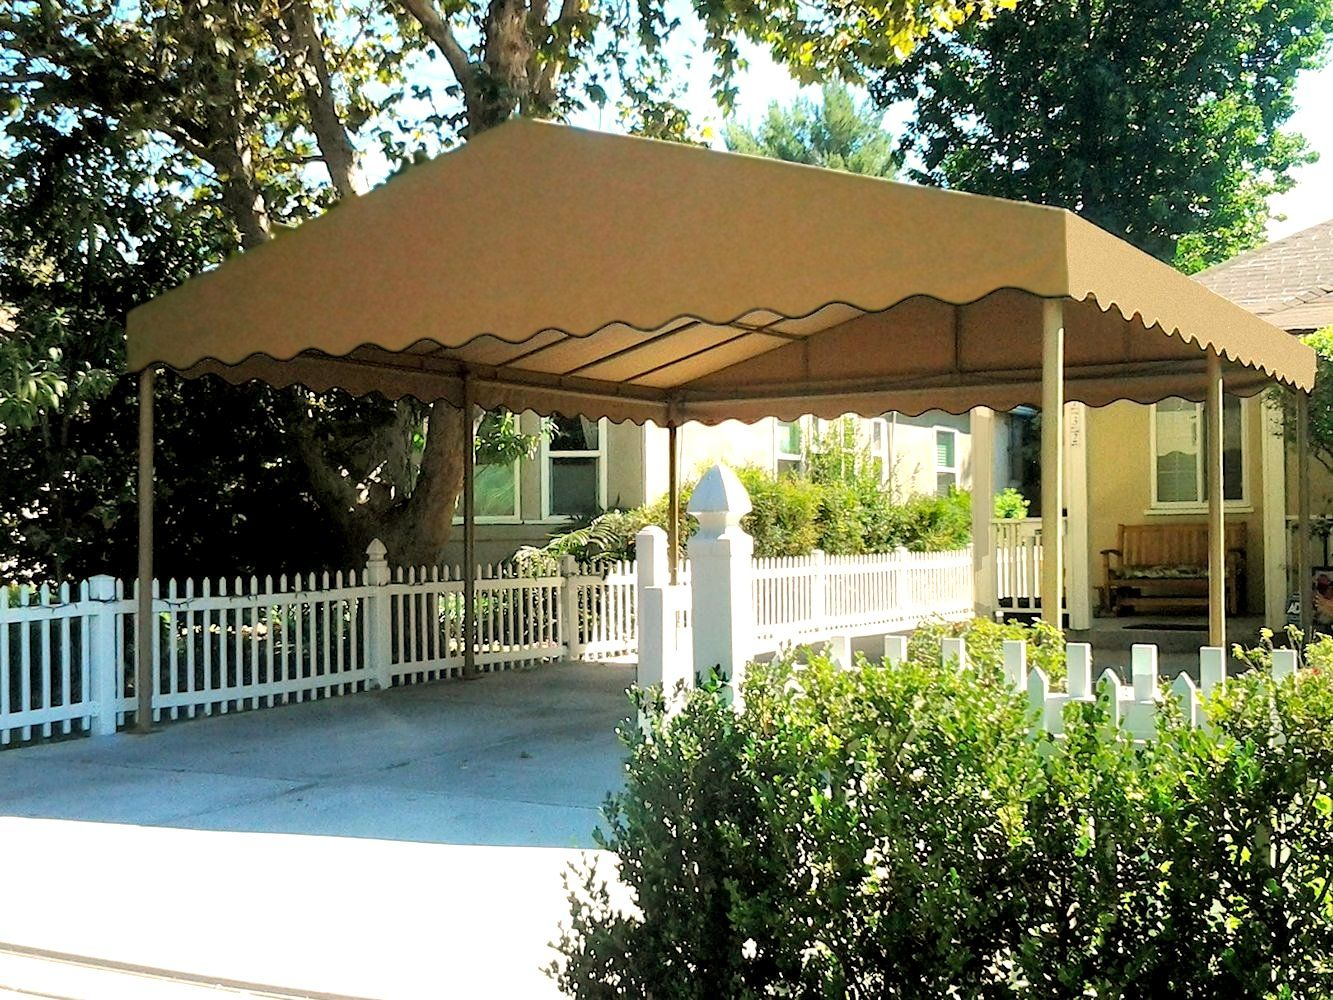 Carports Carport Designs Carport Canvas Awnings